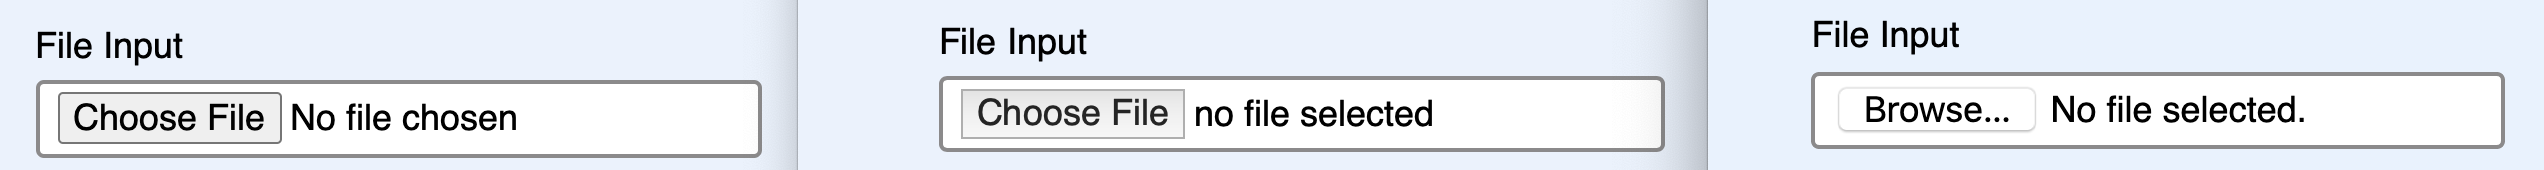 current state of the file input styling across browsers